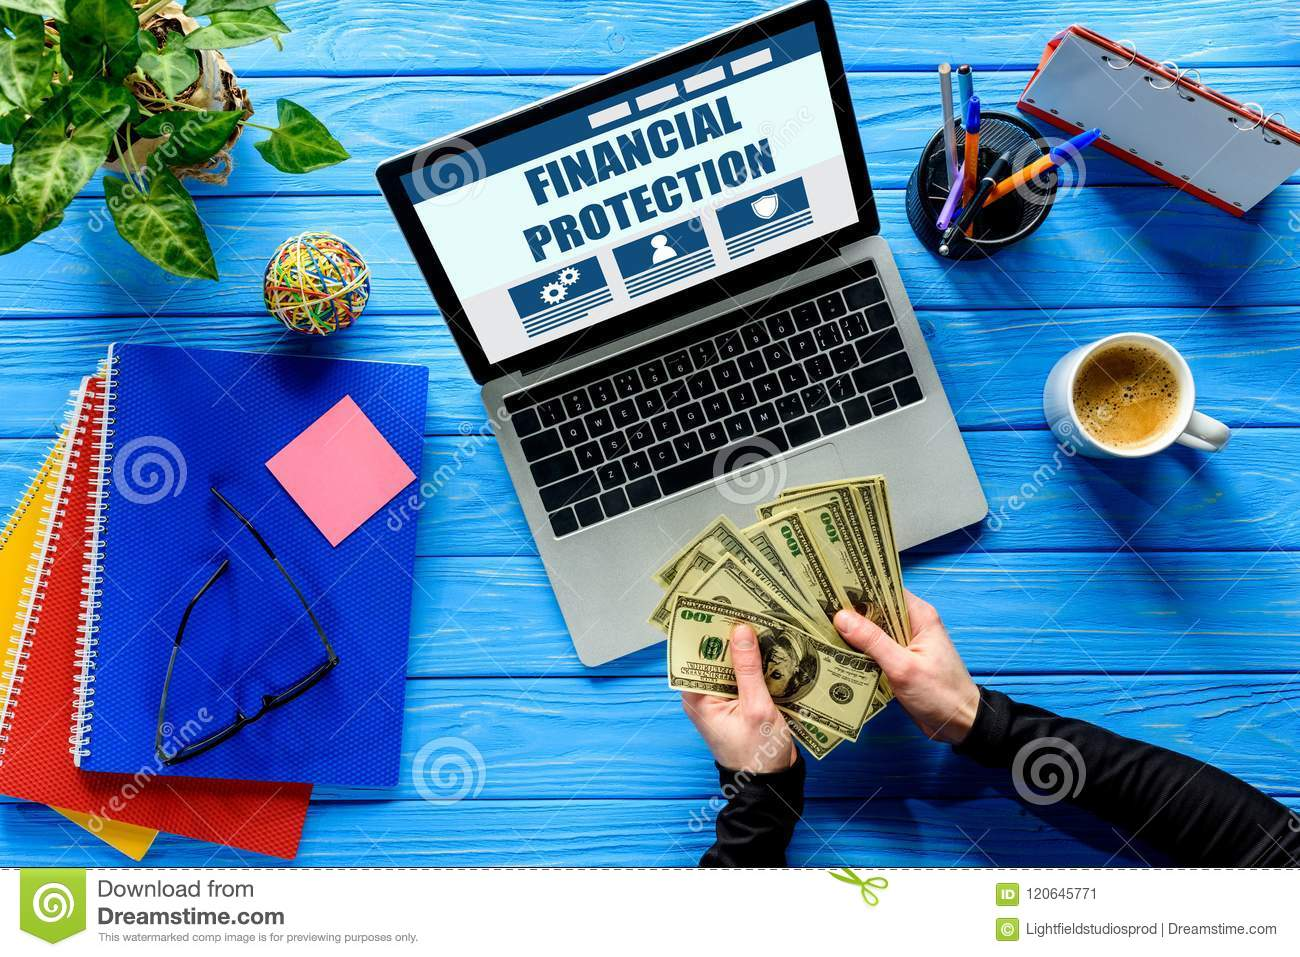 Business person counting dollars by laptop on blue wooden table with stationery, Financial